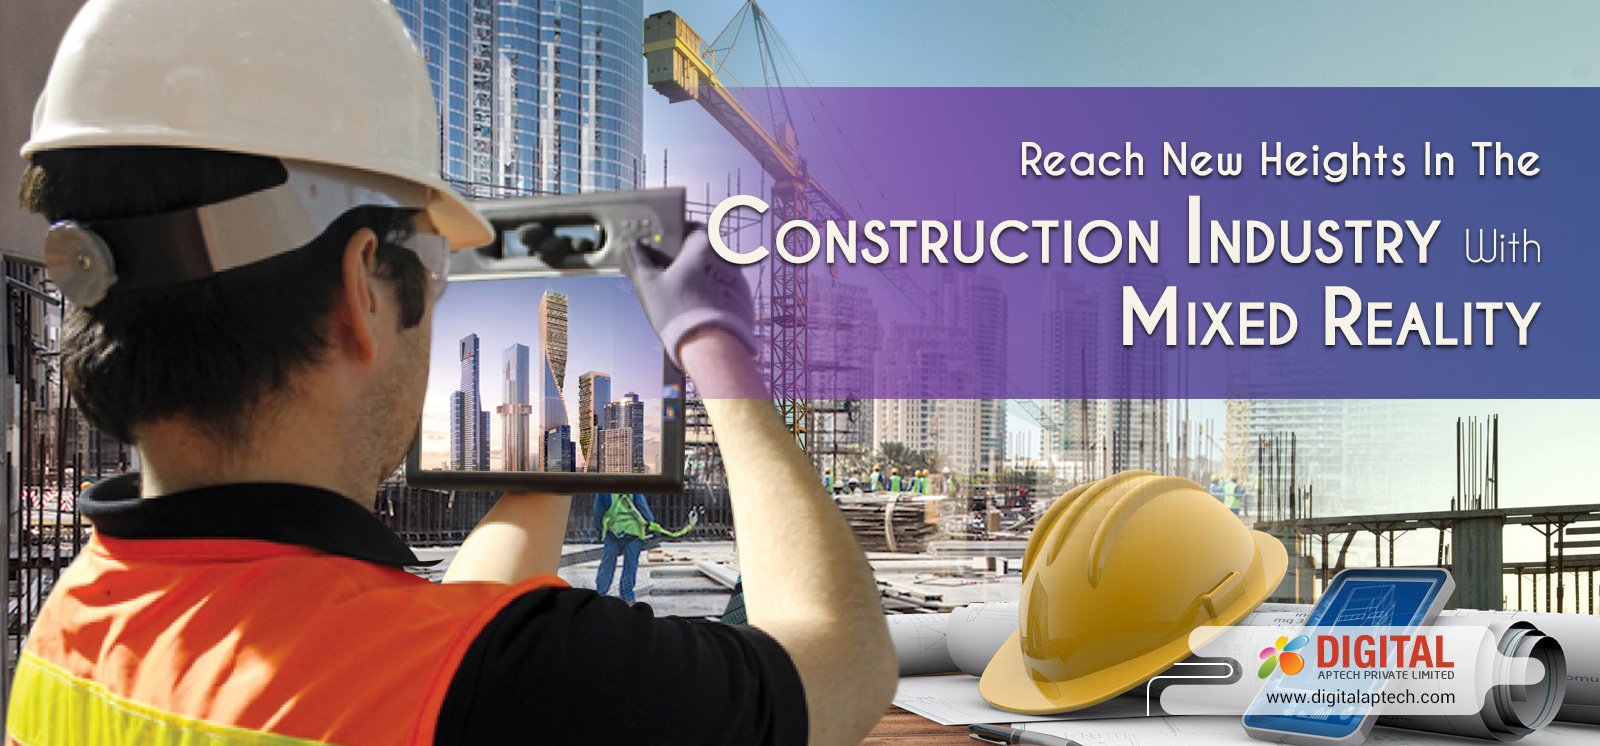 How Can Mixed Reality Help the Construction Industry?